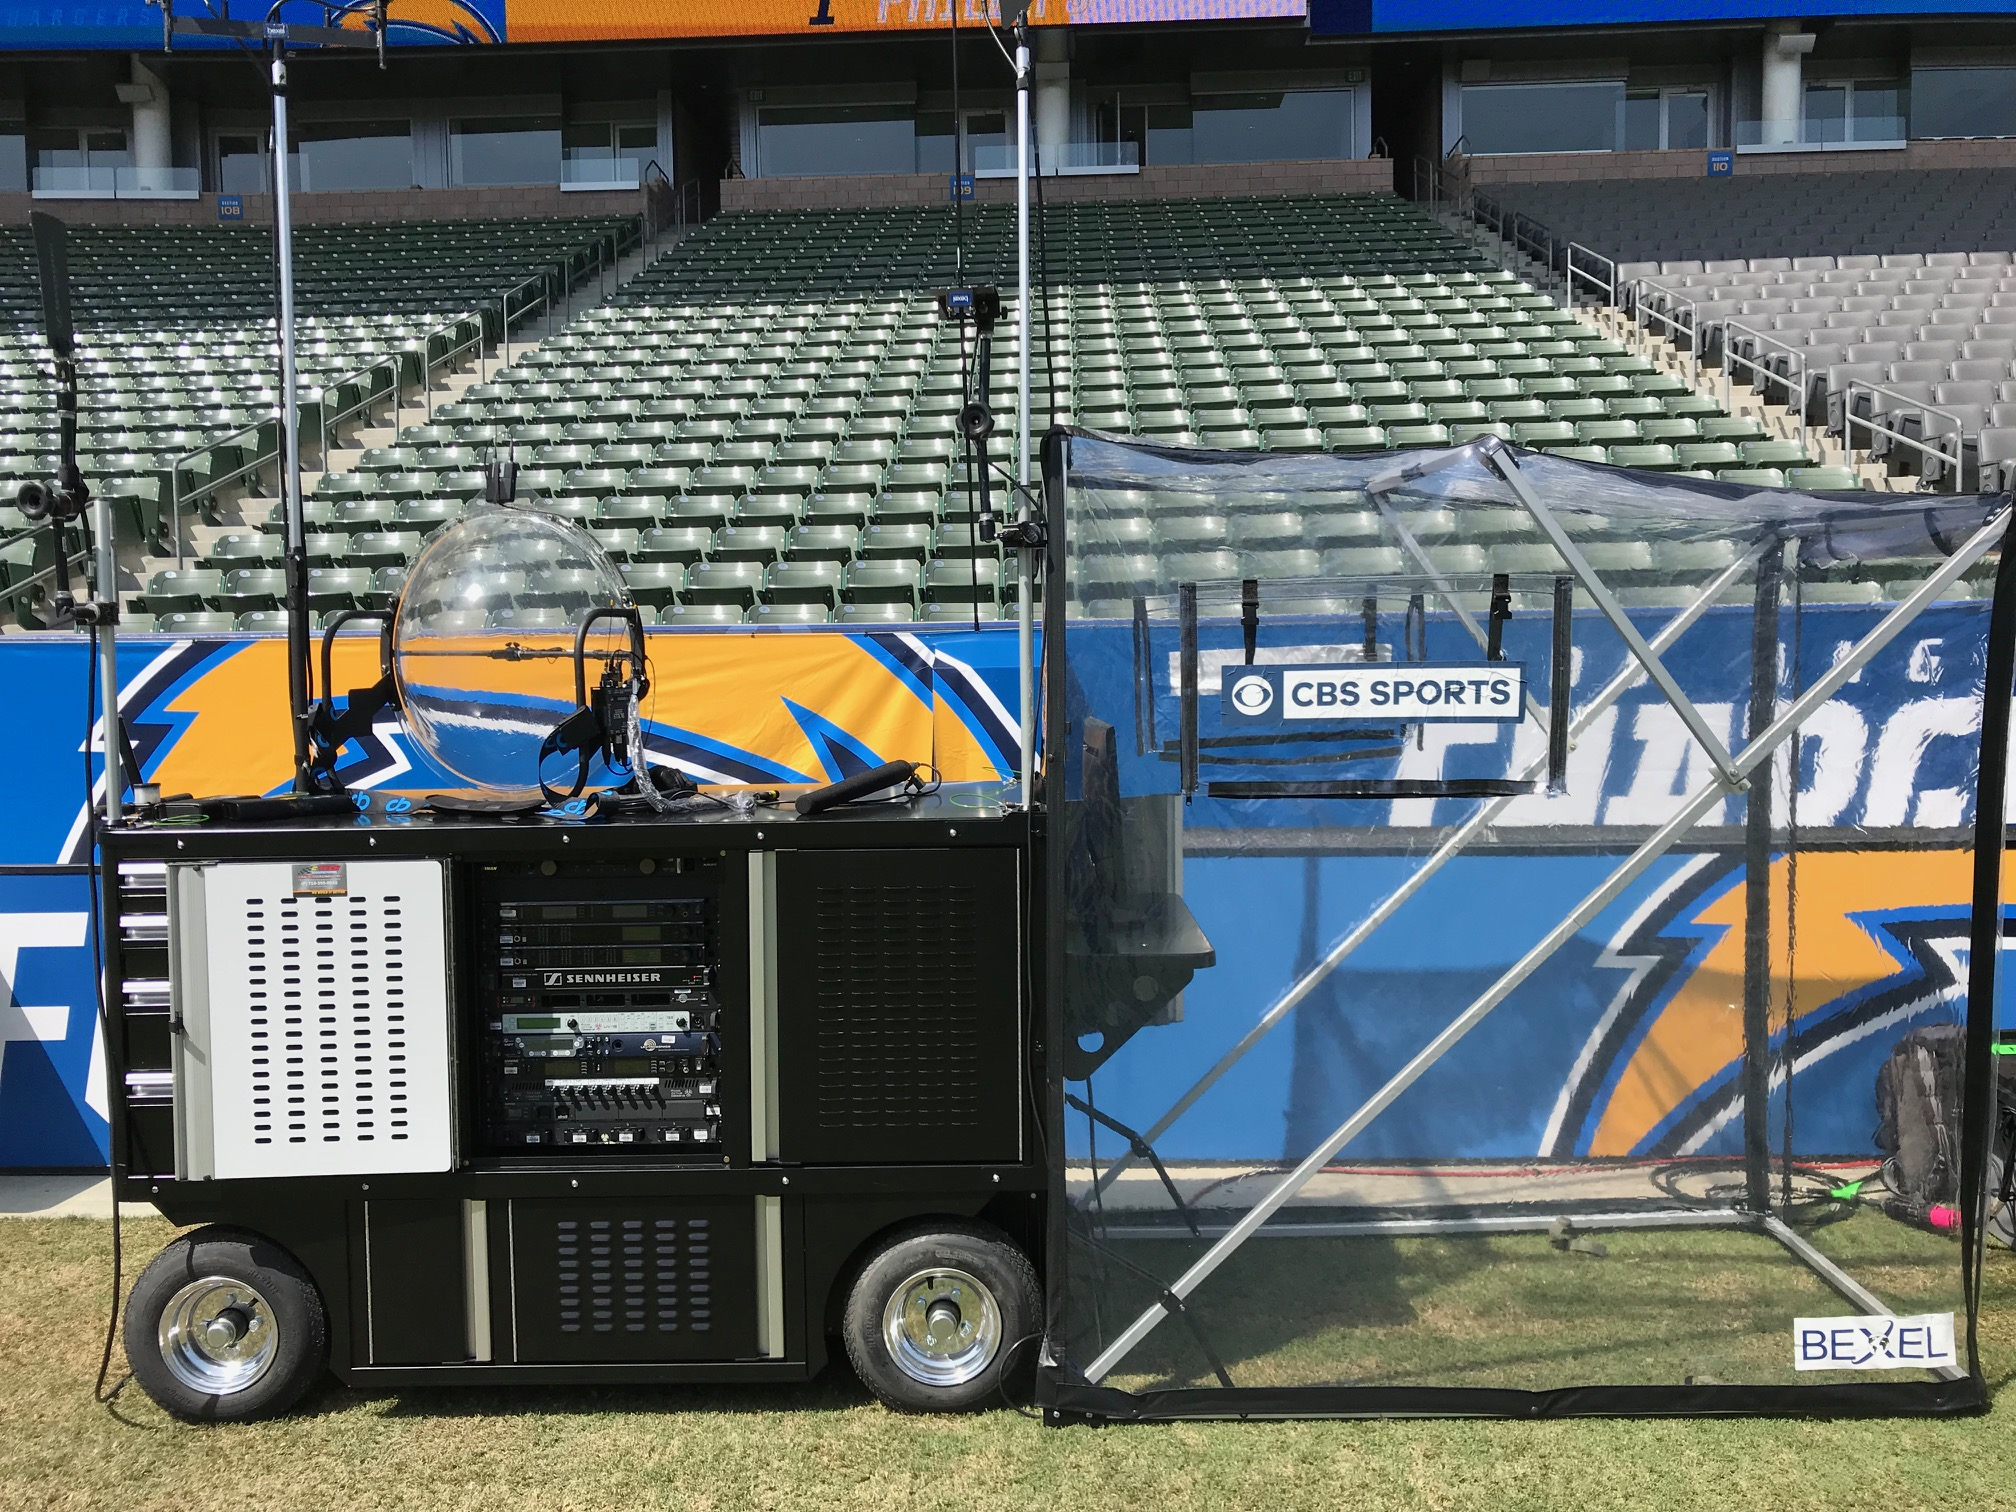 An example of the Sideline Audio/Video cart developed by NEP's team at Bexel for use on NFL broadcast productions.